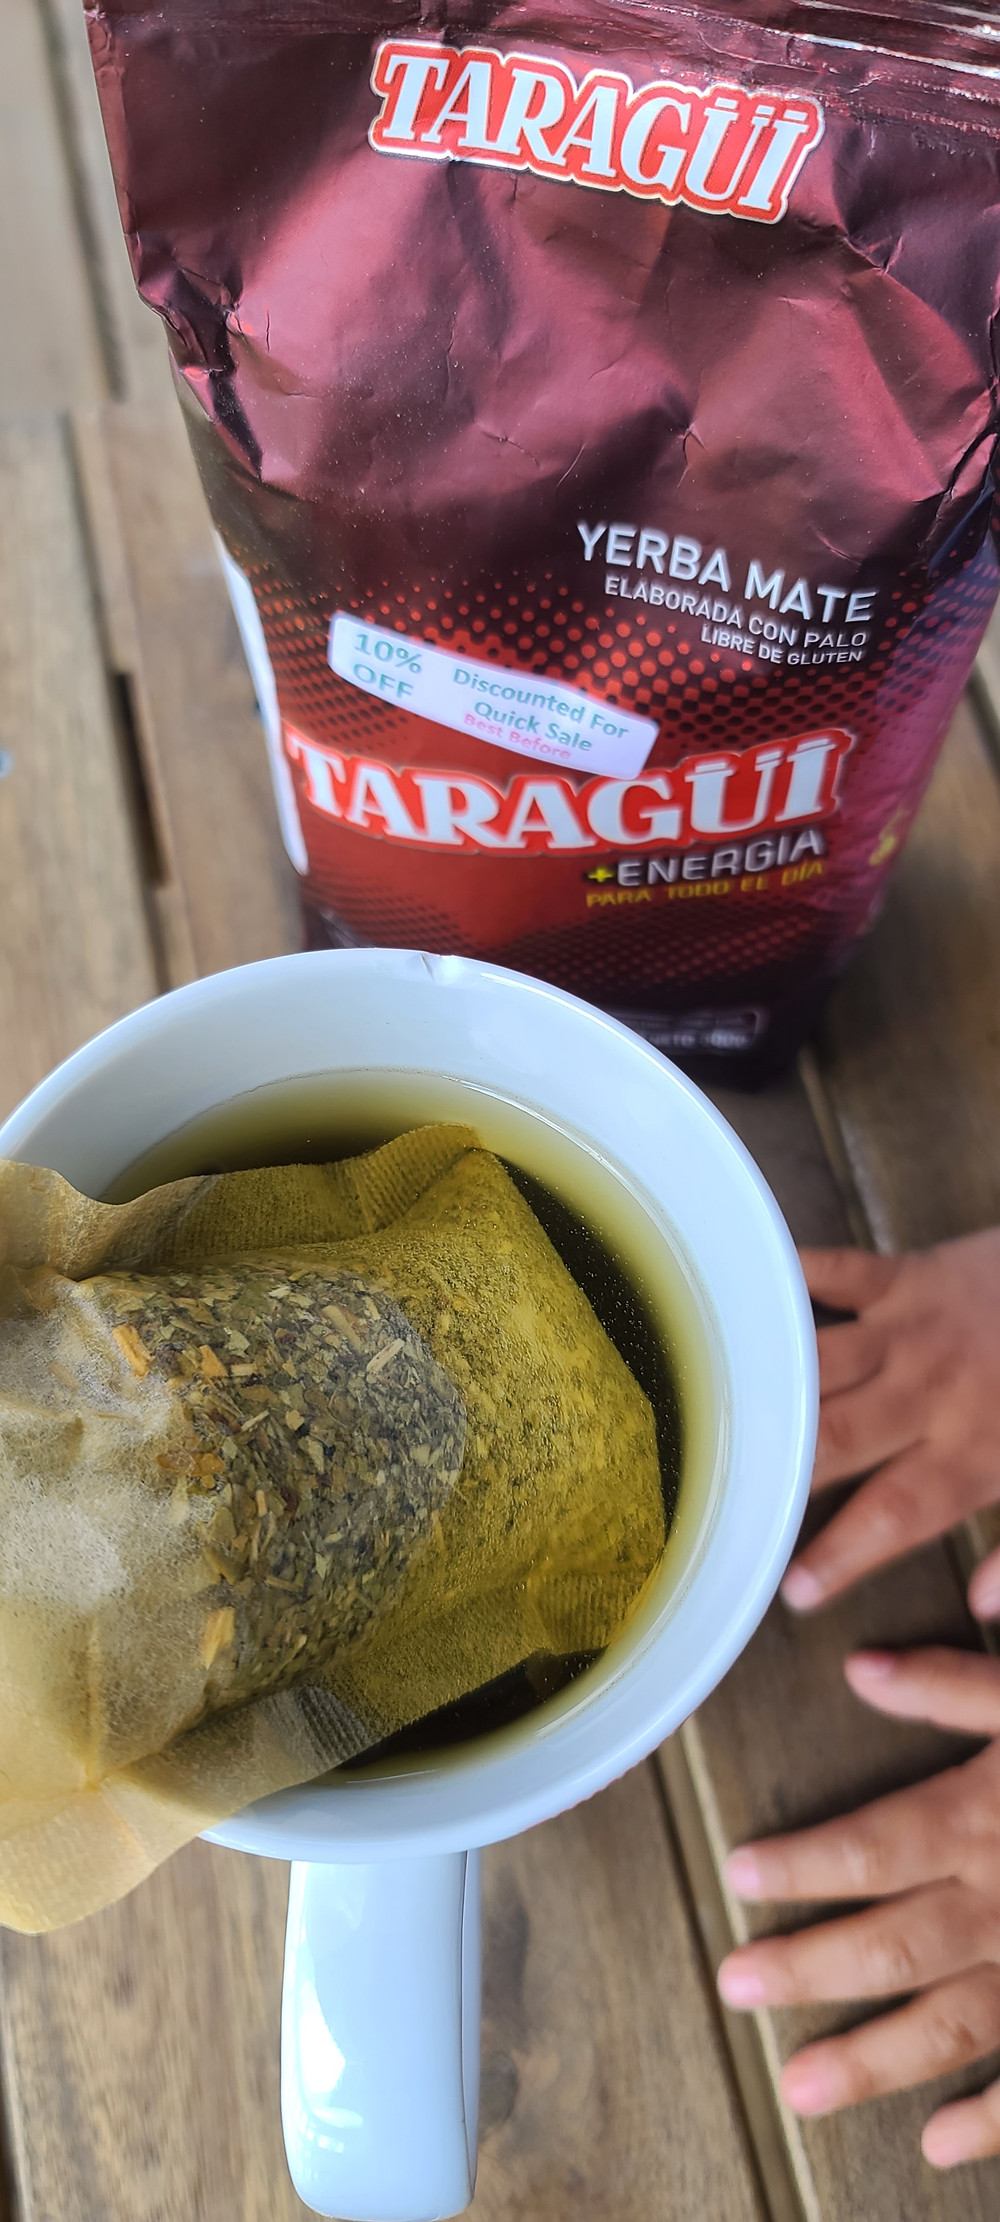 A nice hot cup of Taragui yerba mate for the energy boost.